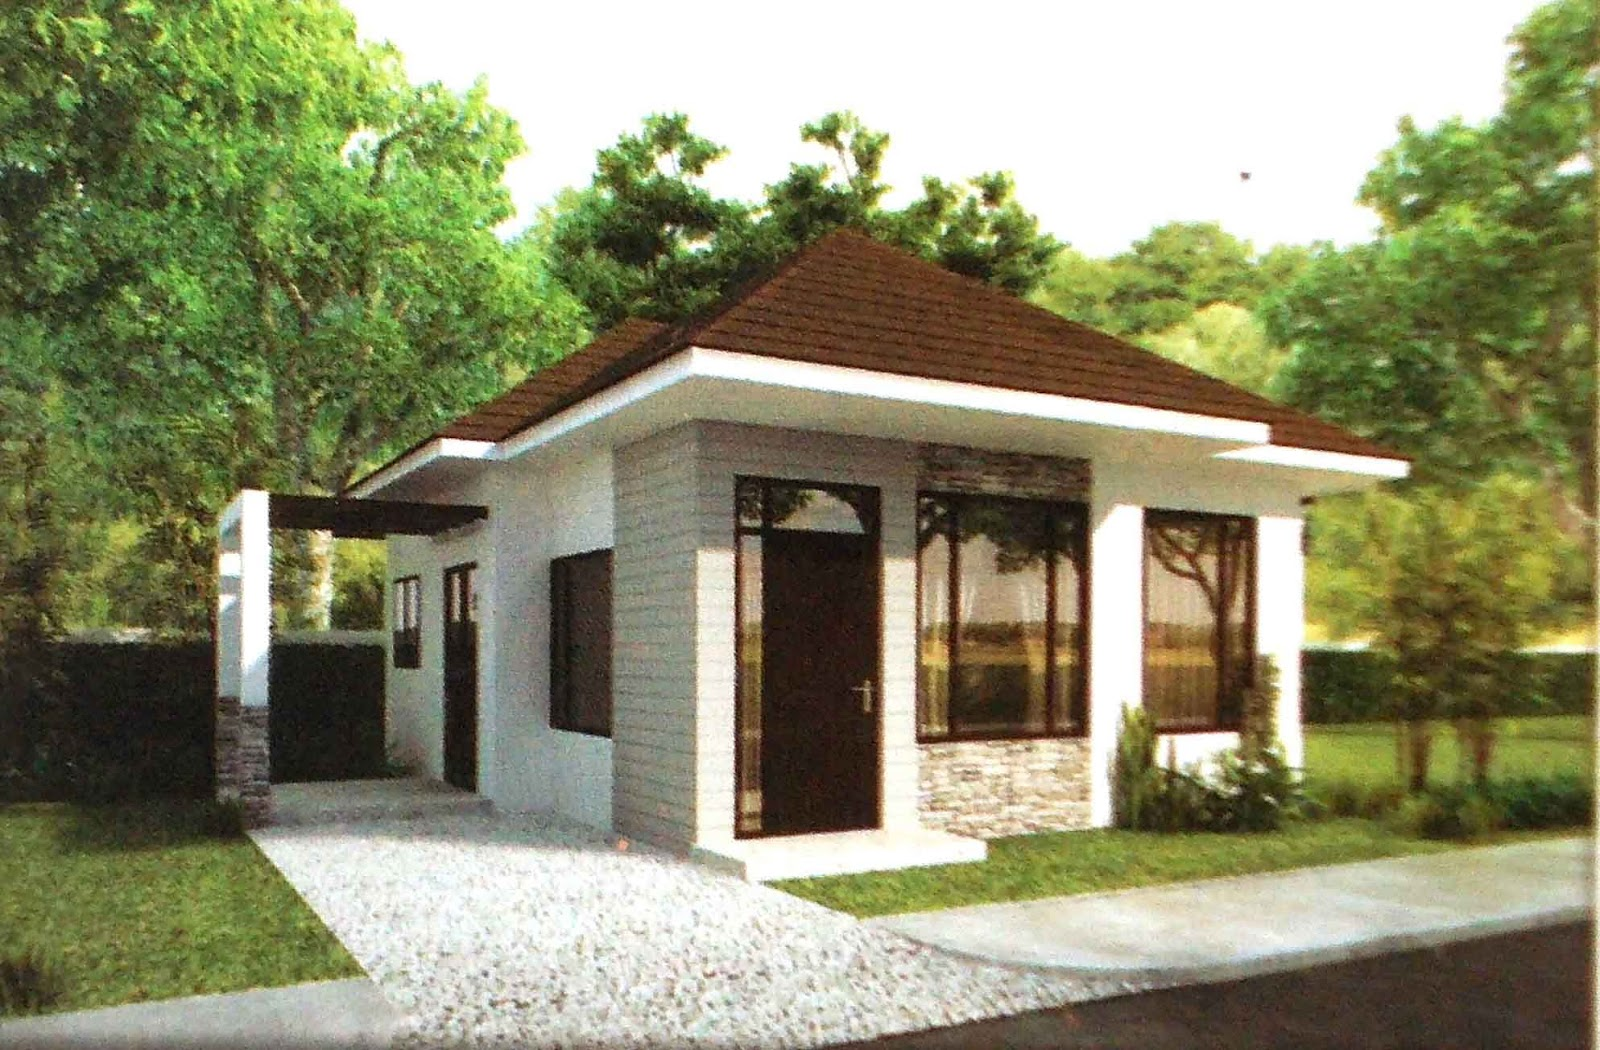 Nicebalay For Sale Very Cheap 2 Bedroom Bungalow House